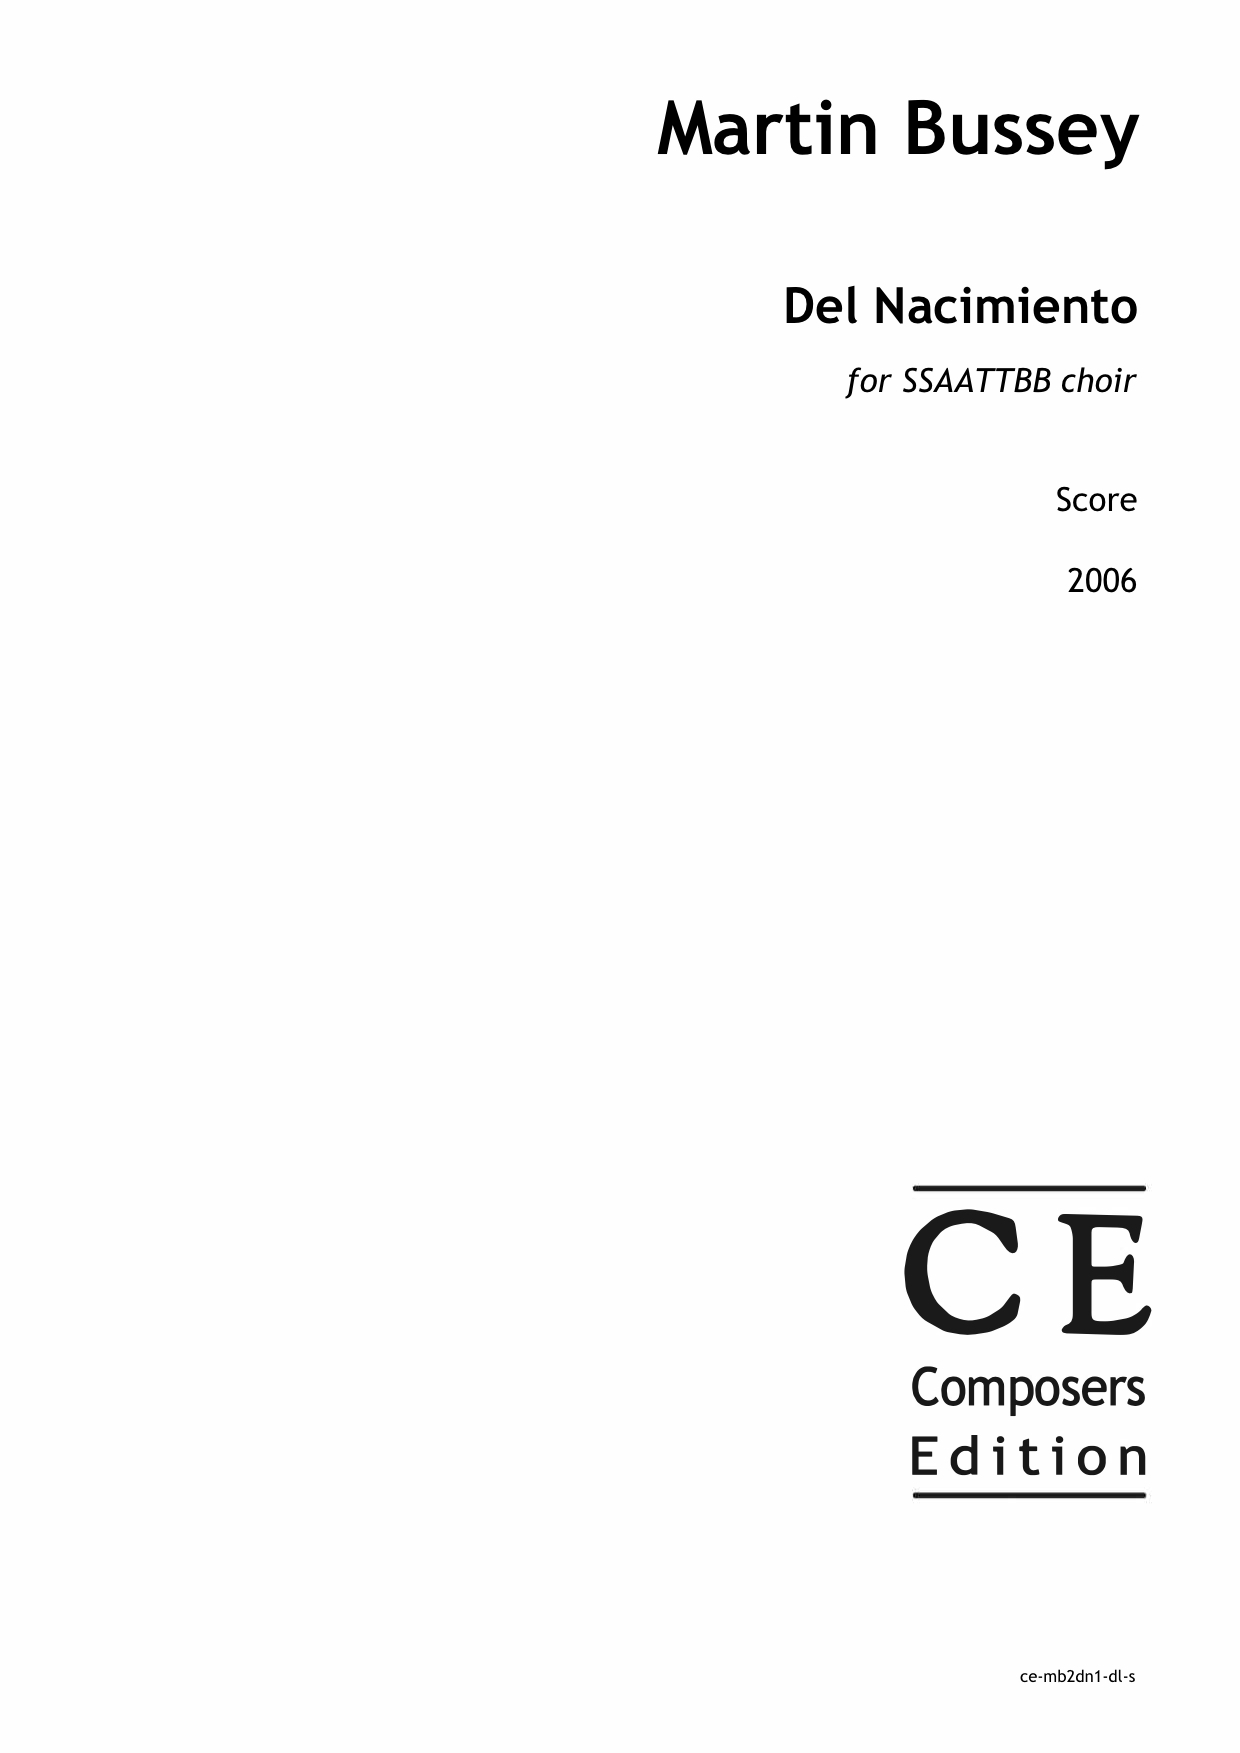 Martin Bussey: Del Nacimiento for SSAATTBB choir